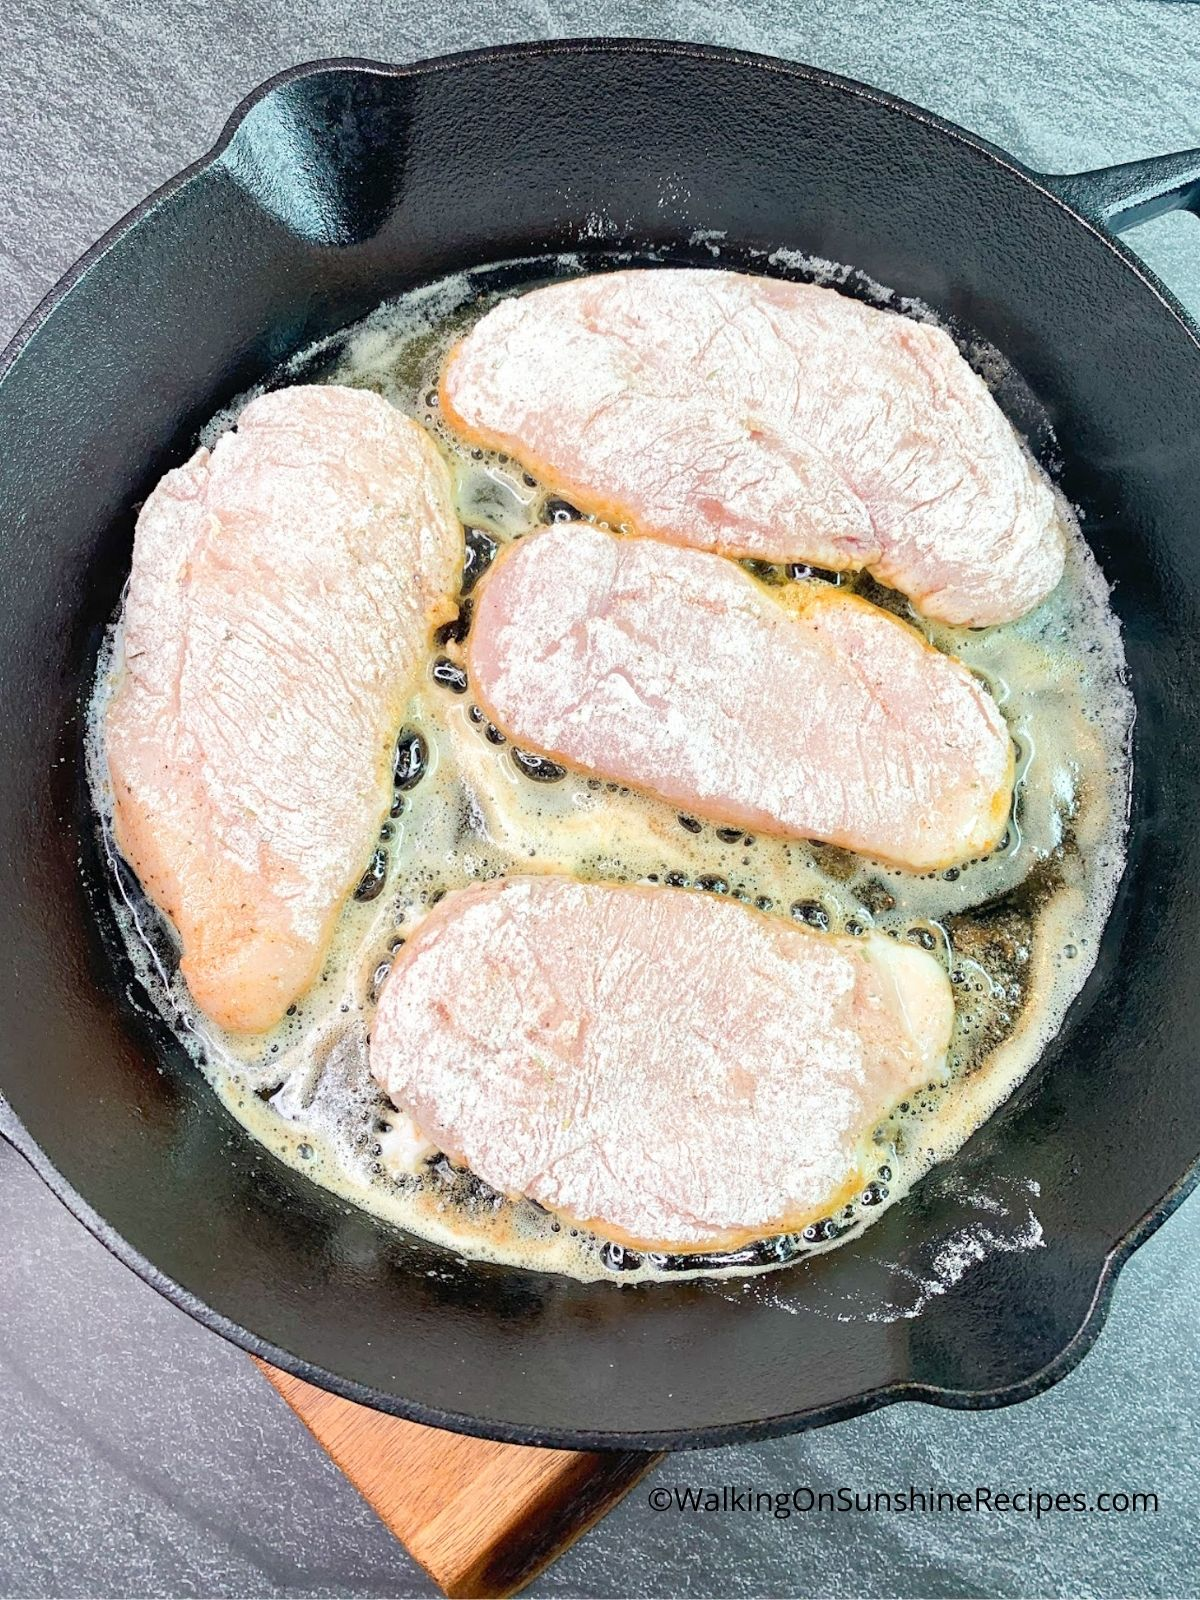 Chicken cutlets cooking in cast iron skillet pan.